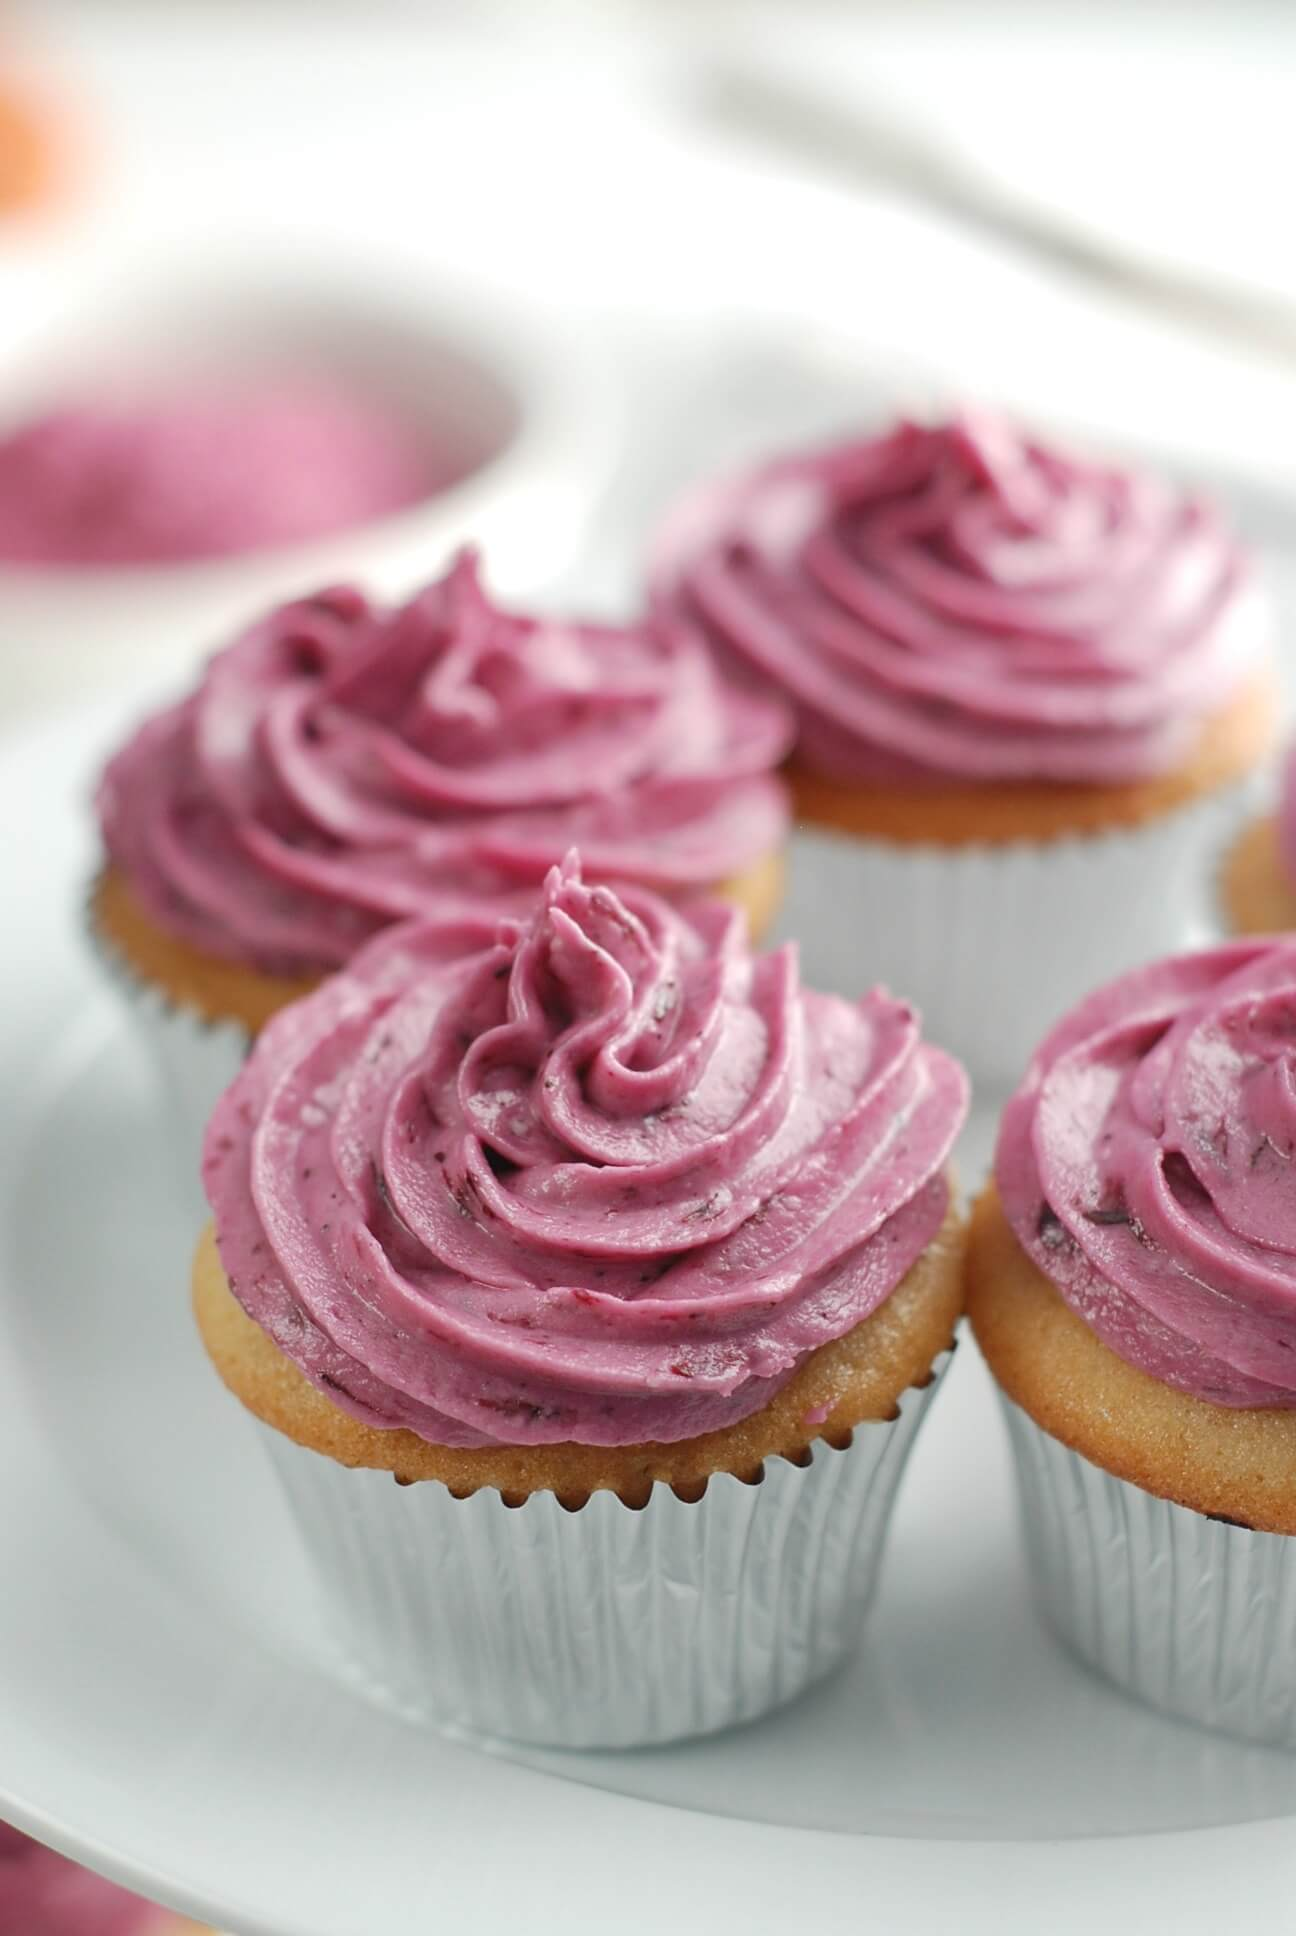 Naturally-Colored Wild Blueberry Buttercream Frosting Picture